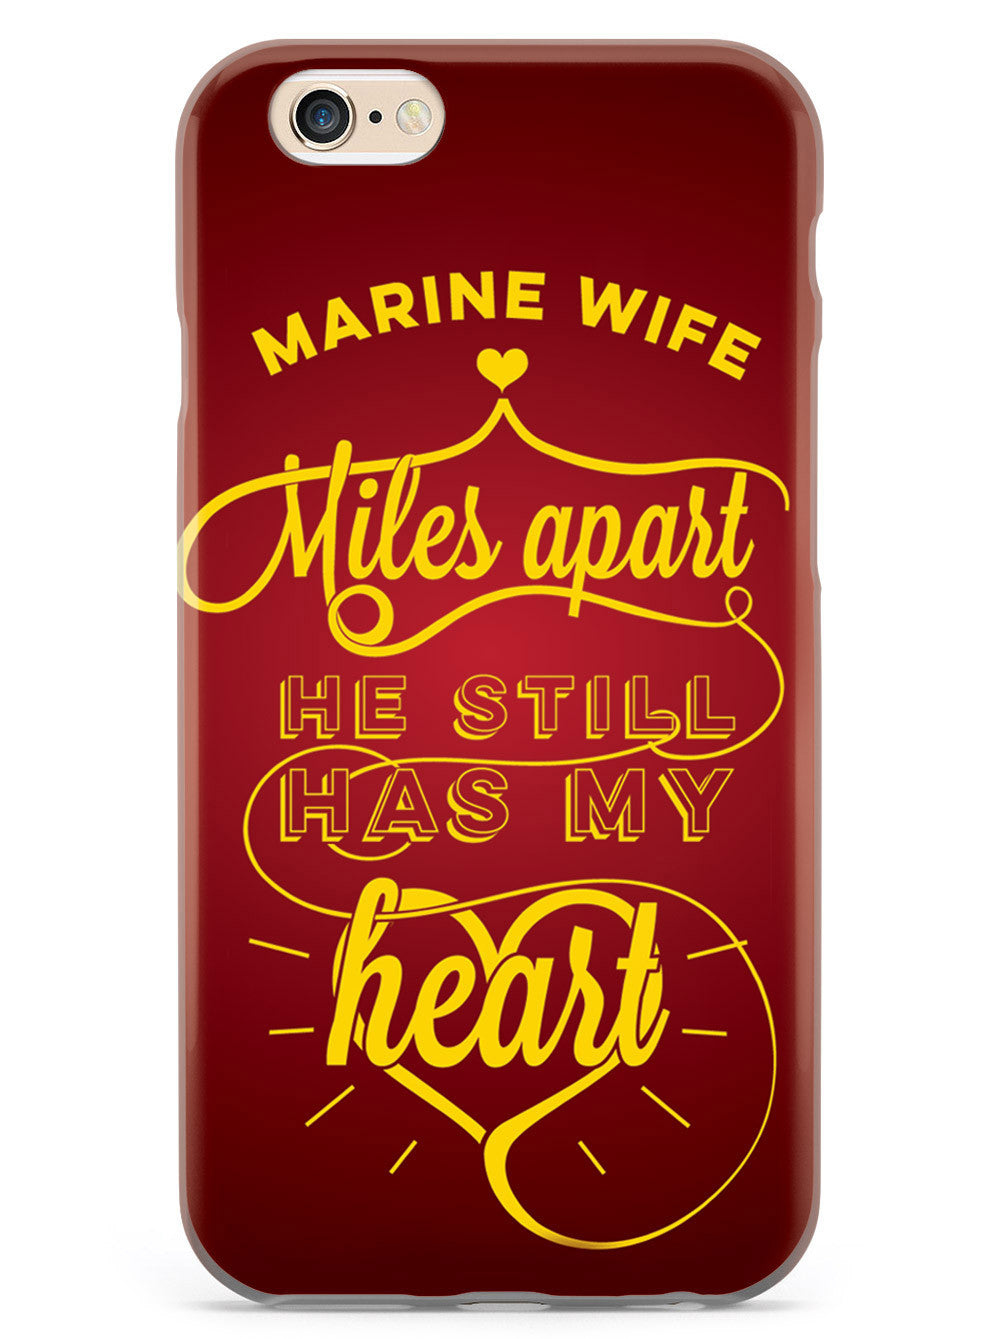 Marine Wife - Miles Apart, Still Has My Heart Case